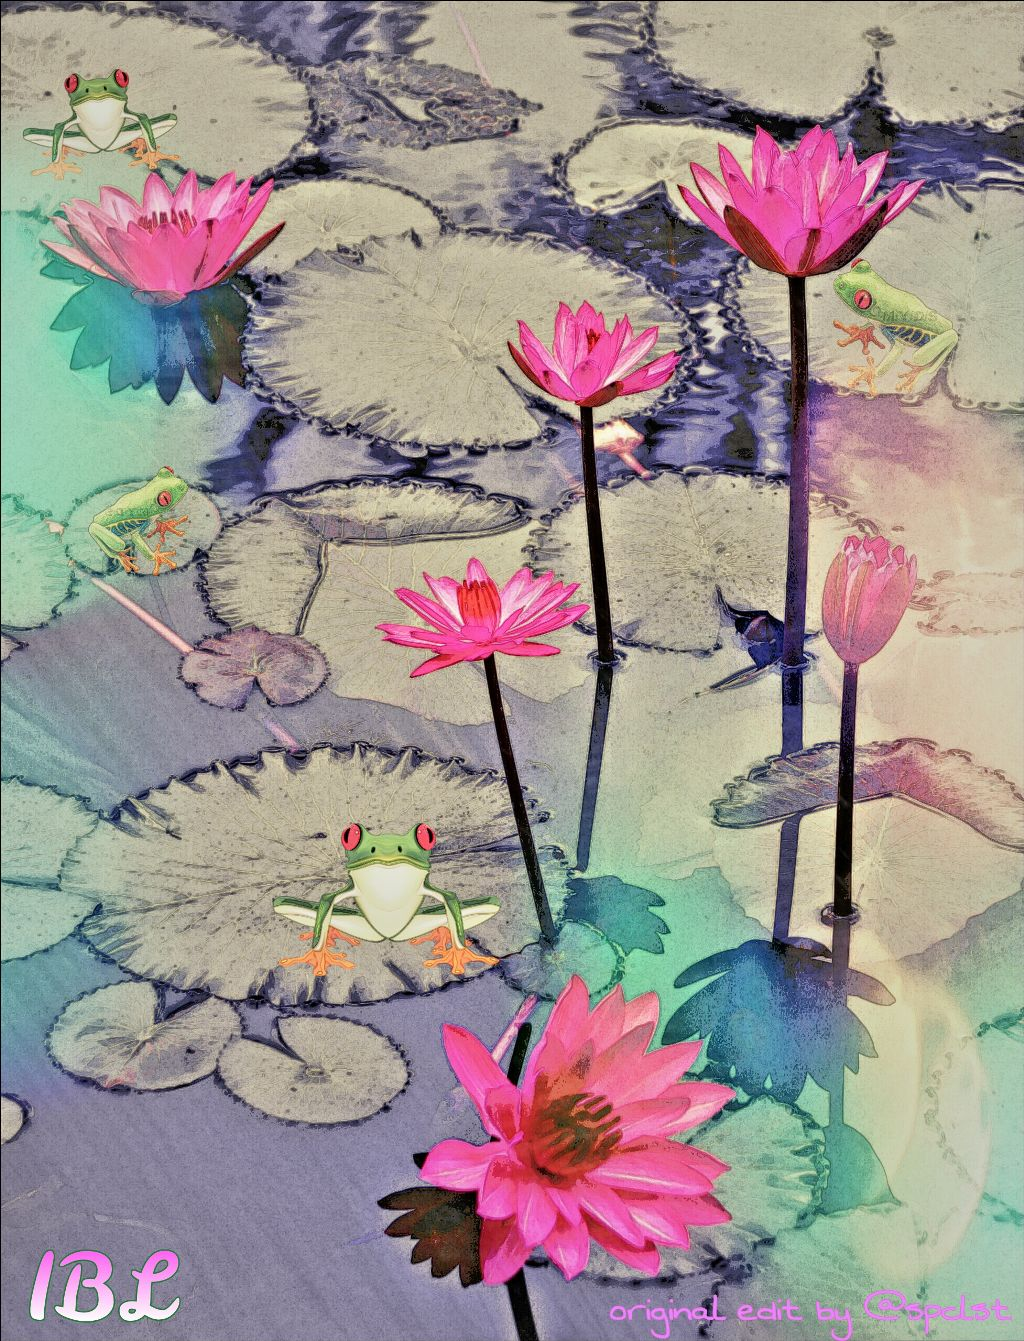 Featured! Lol.😄 Thanks @pa  And thanks for the lovely pic to edit @spclst  #edits  #friends  #picsart  #people  #clipart  #colorful  #waterlily  #frogs  #flowers   @spclst I love waterlilys so a little edit to your original. 😄😄